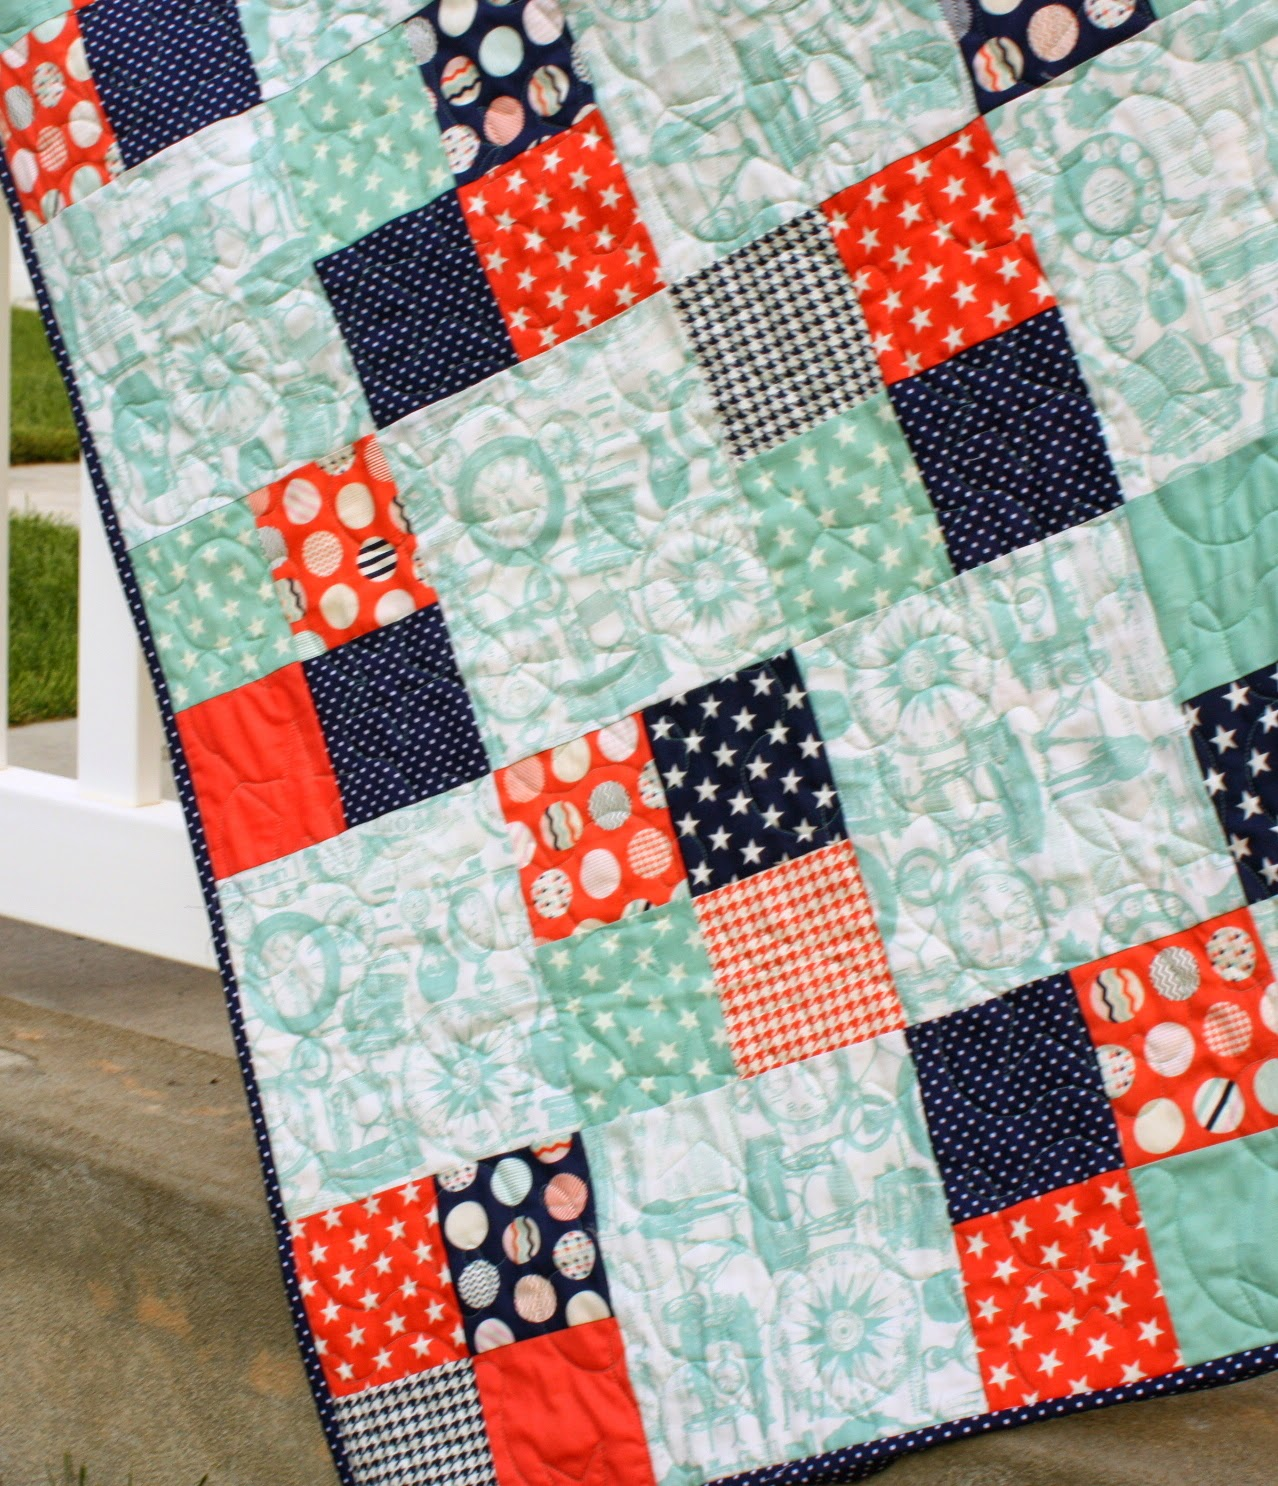 Free charm pack quilt patterns u create fast four patch quilt tutorial at riley blake designs jeuxipadfo Gallery